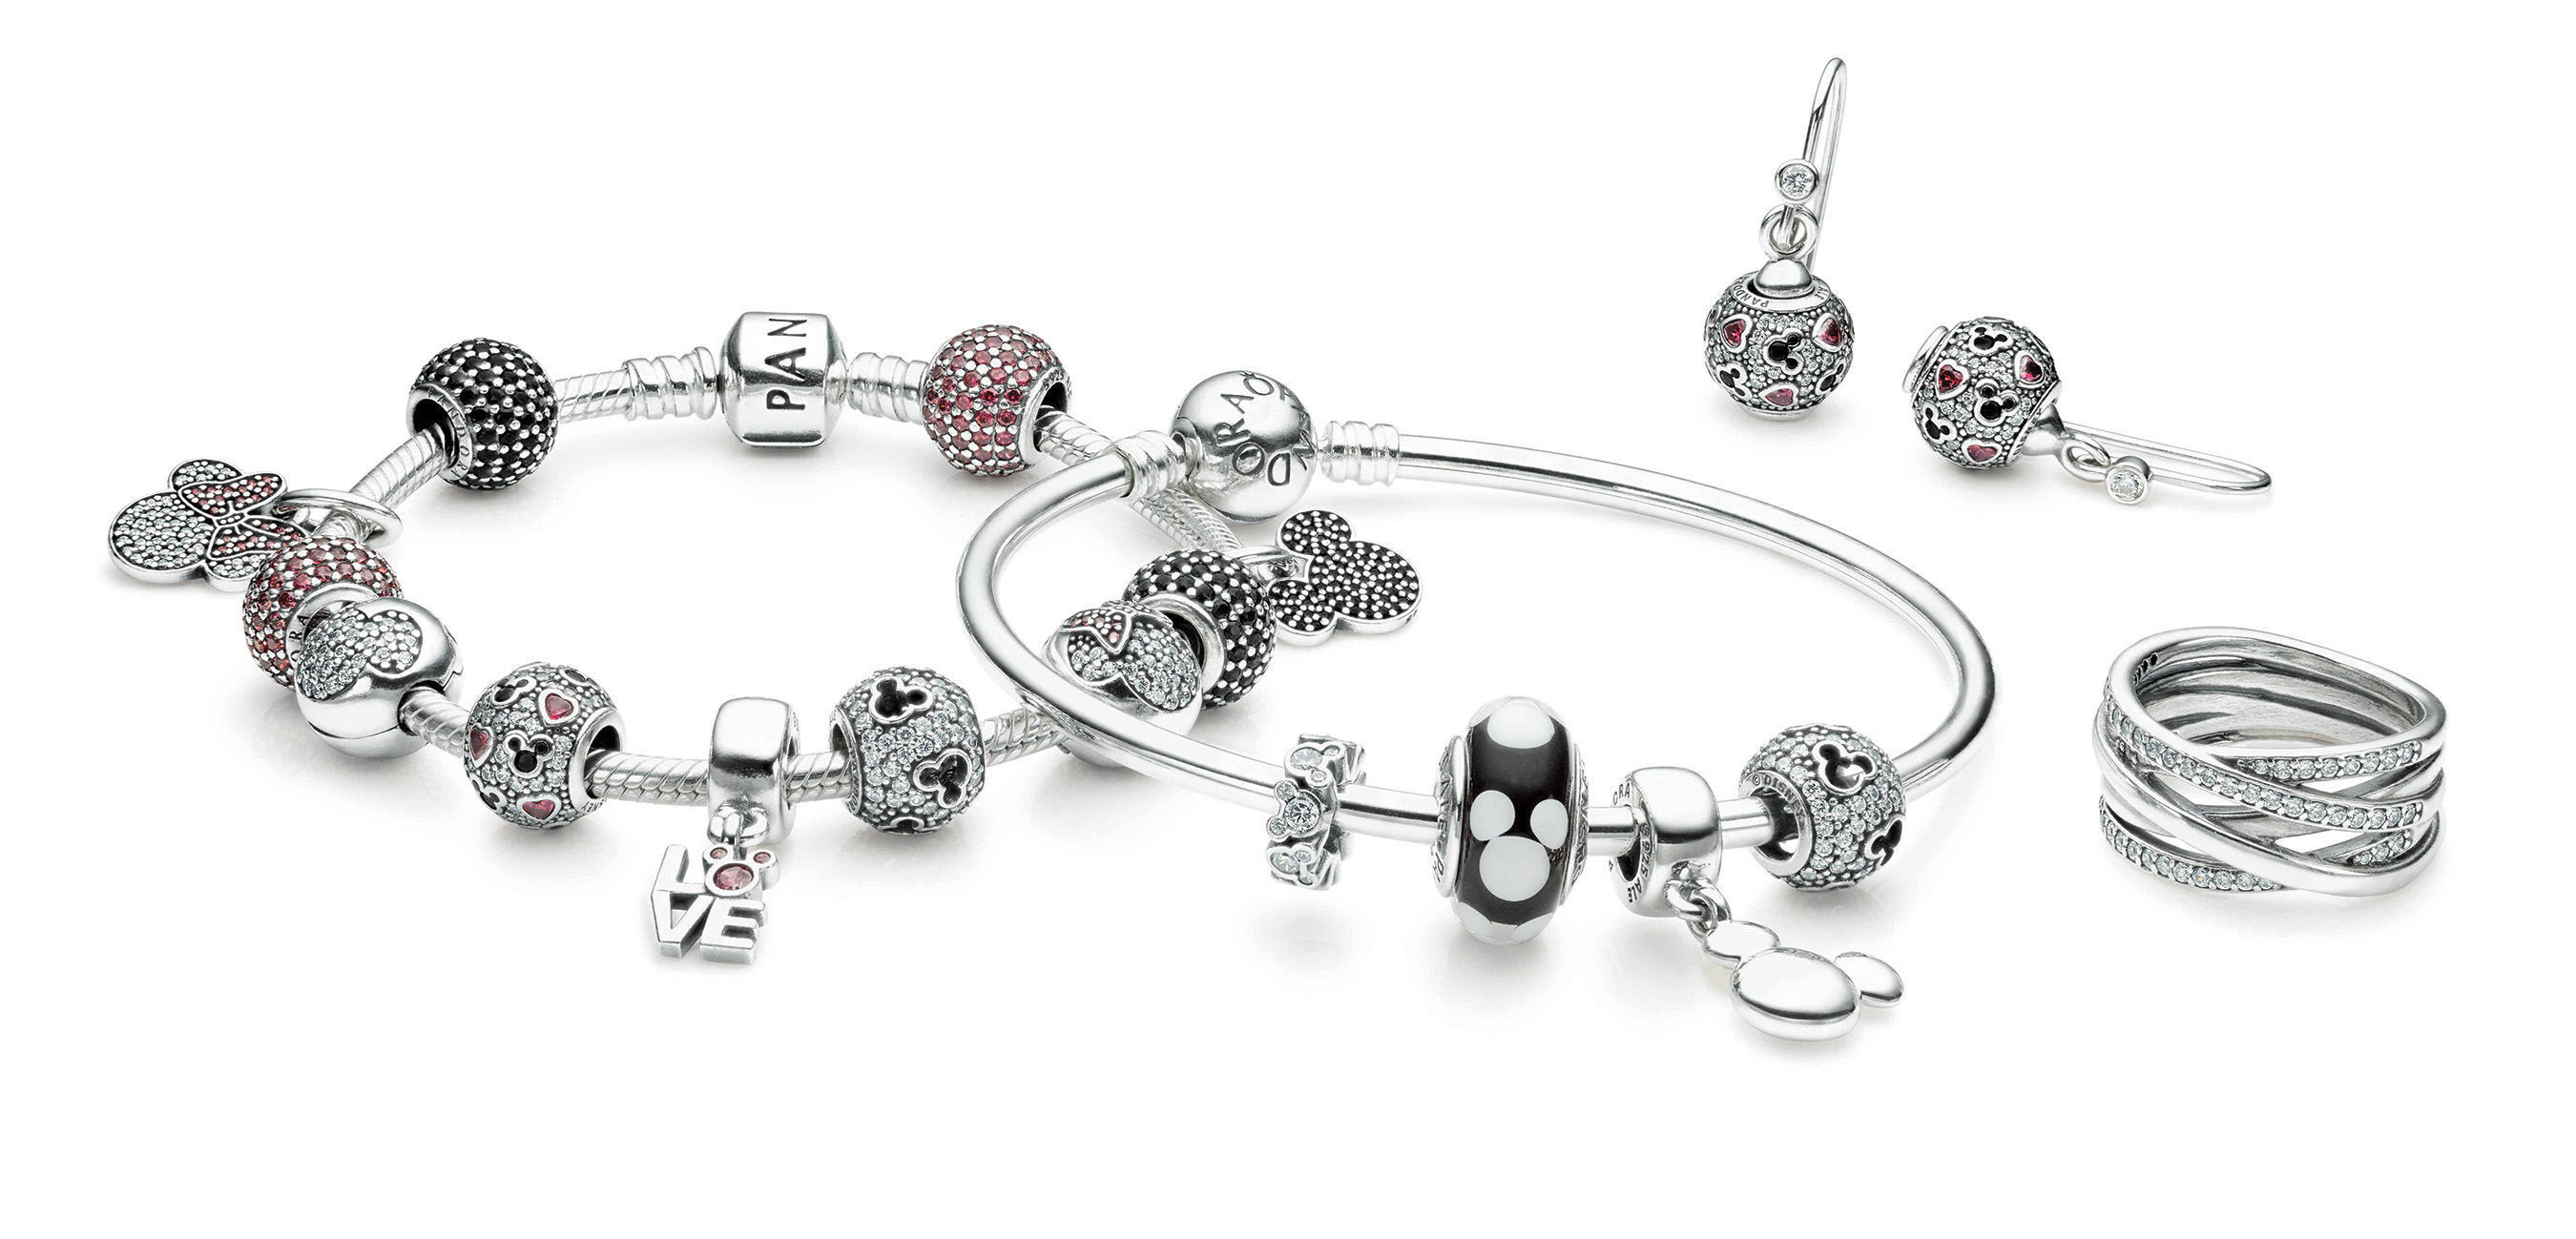 PANDORA's Disney jewelry collection of charms. Disney's animations are all grown up when charms are combined with other pieces from PANDORA's collection, such as sterling silver charm bracelets and bangles, stackable rings or earrings.